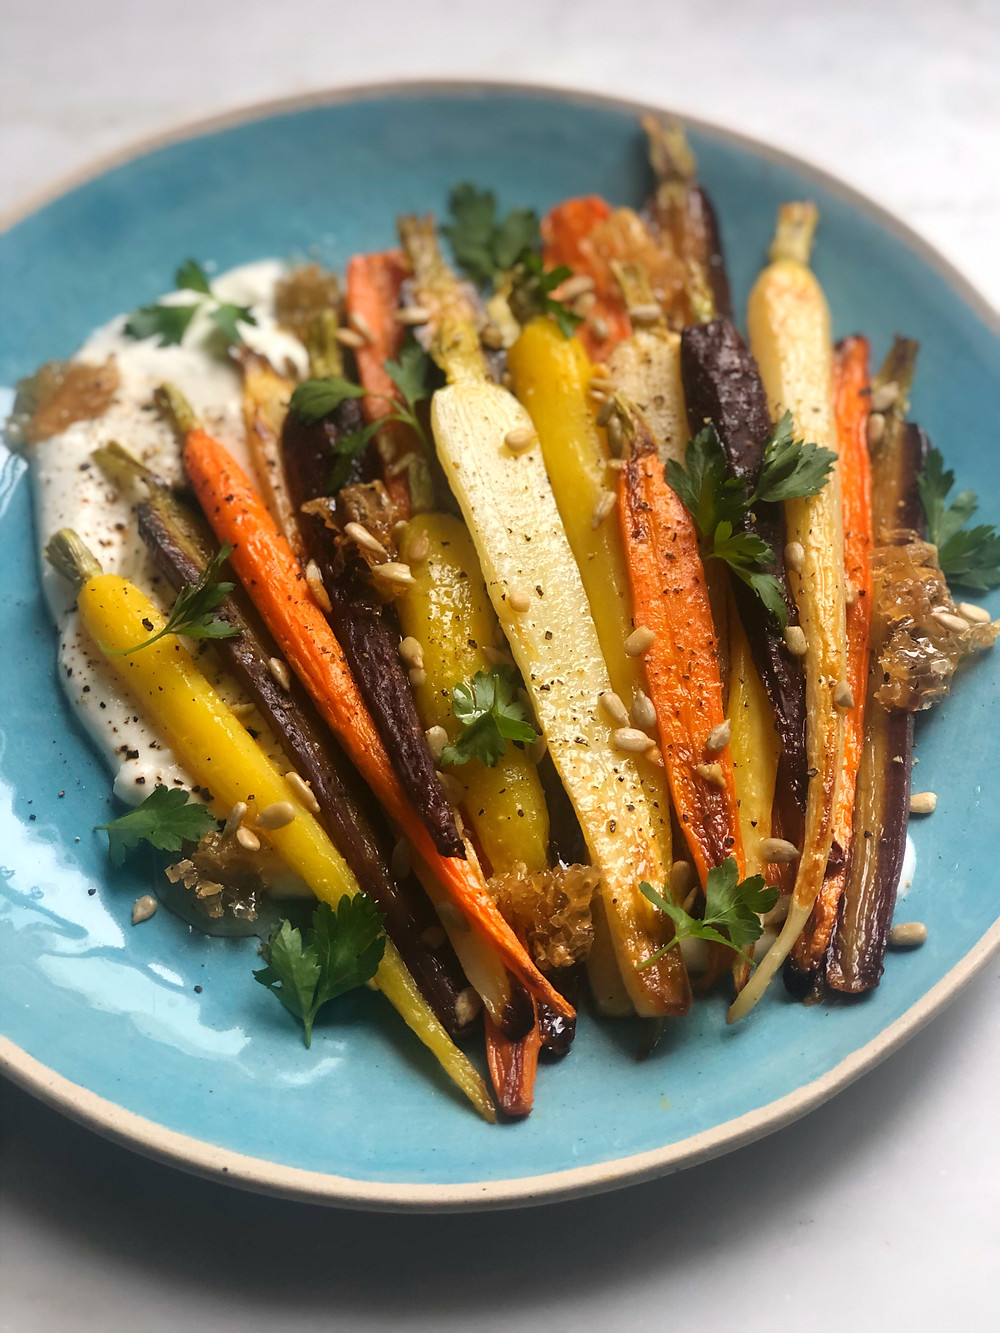 Roasted Rainbow Carrots with Whipped Feta, Honeycomb & Sunflower